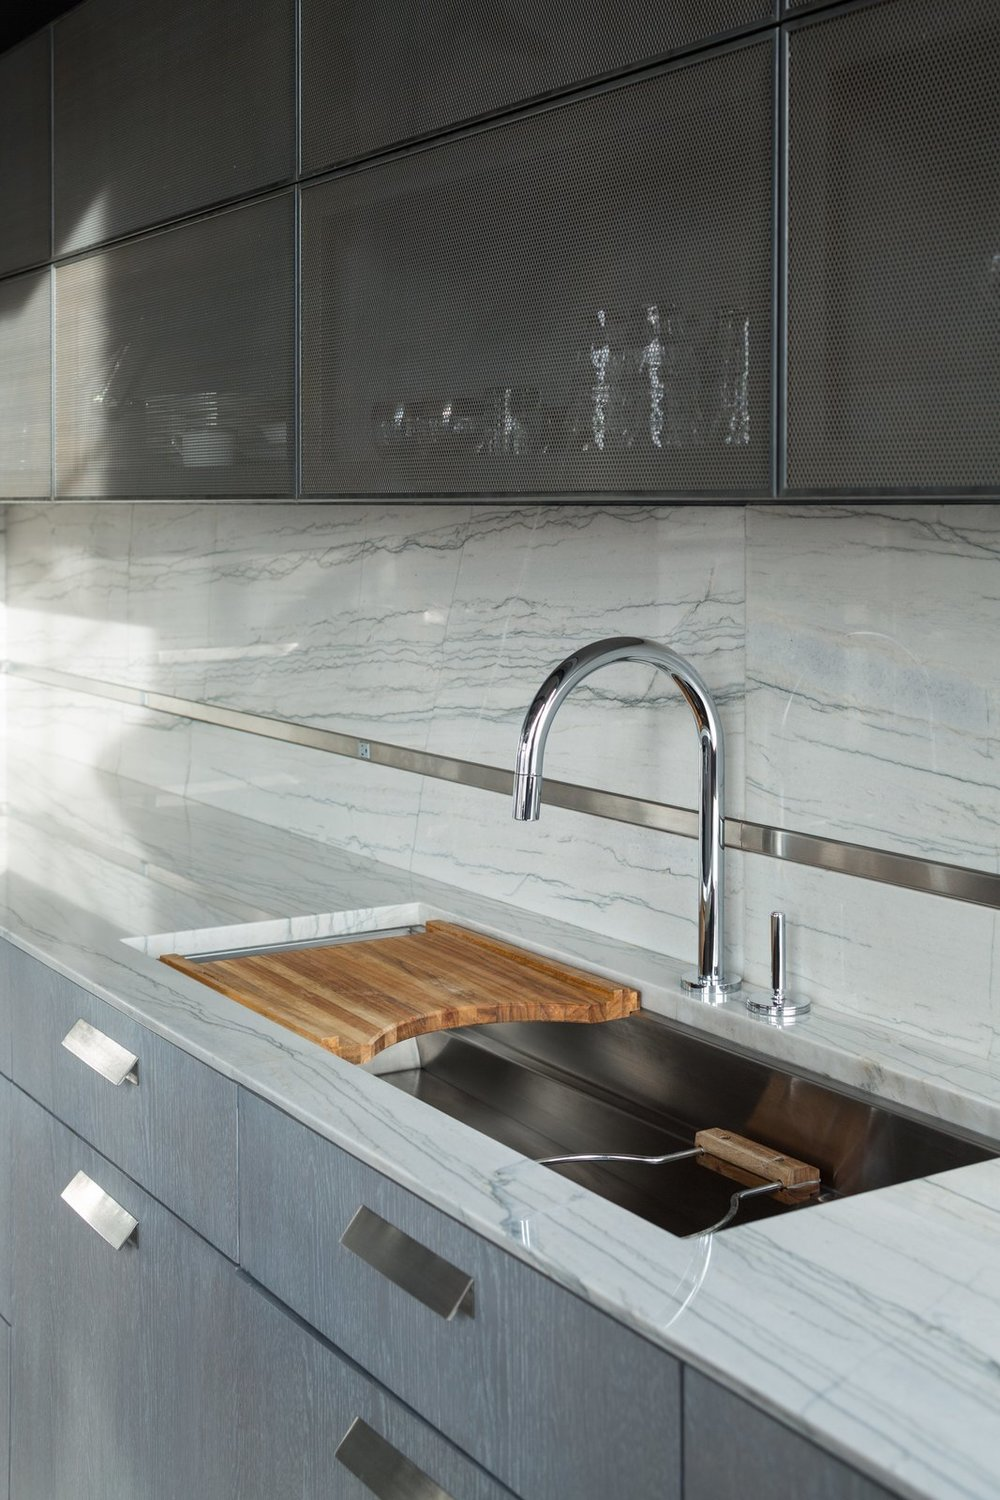 A Kallista sink and faucet abuts the back wall.  Photo: David Lauer Photography